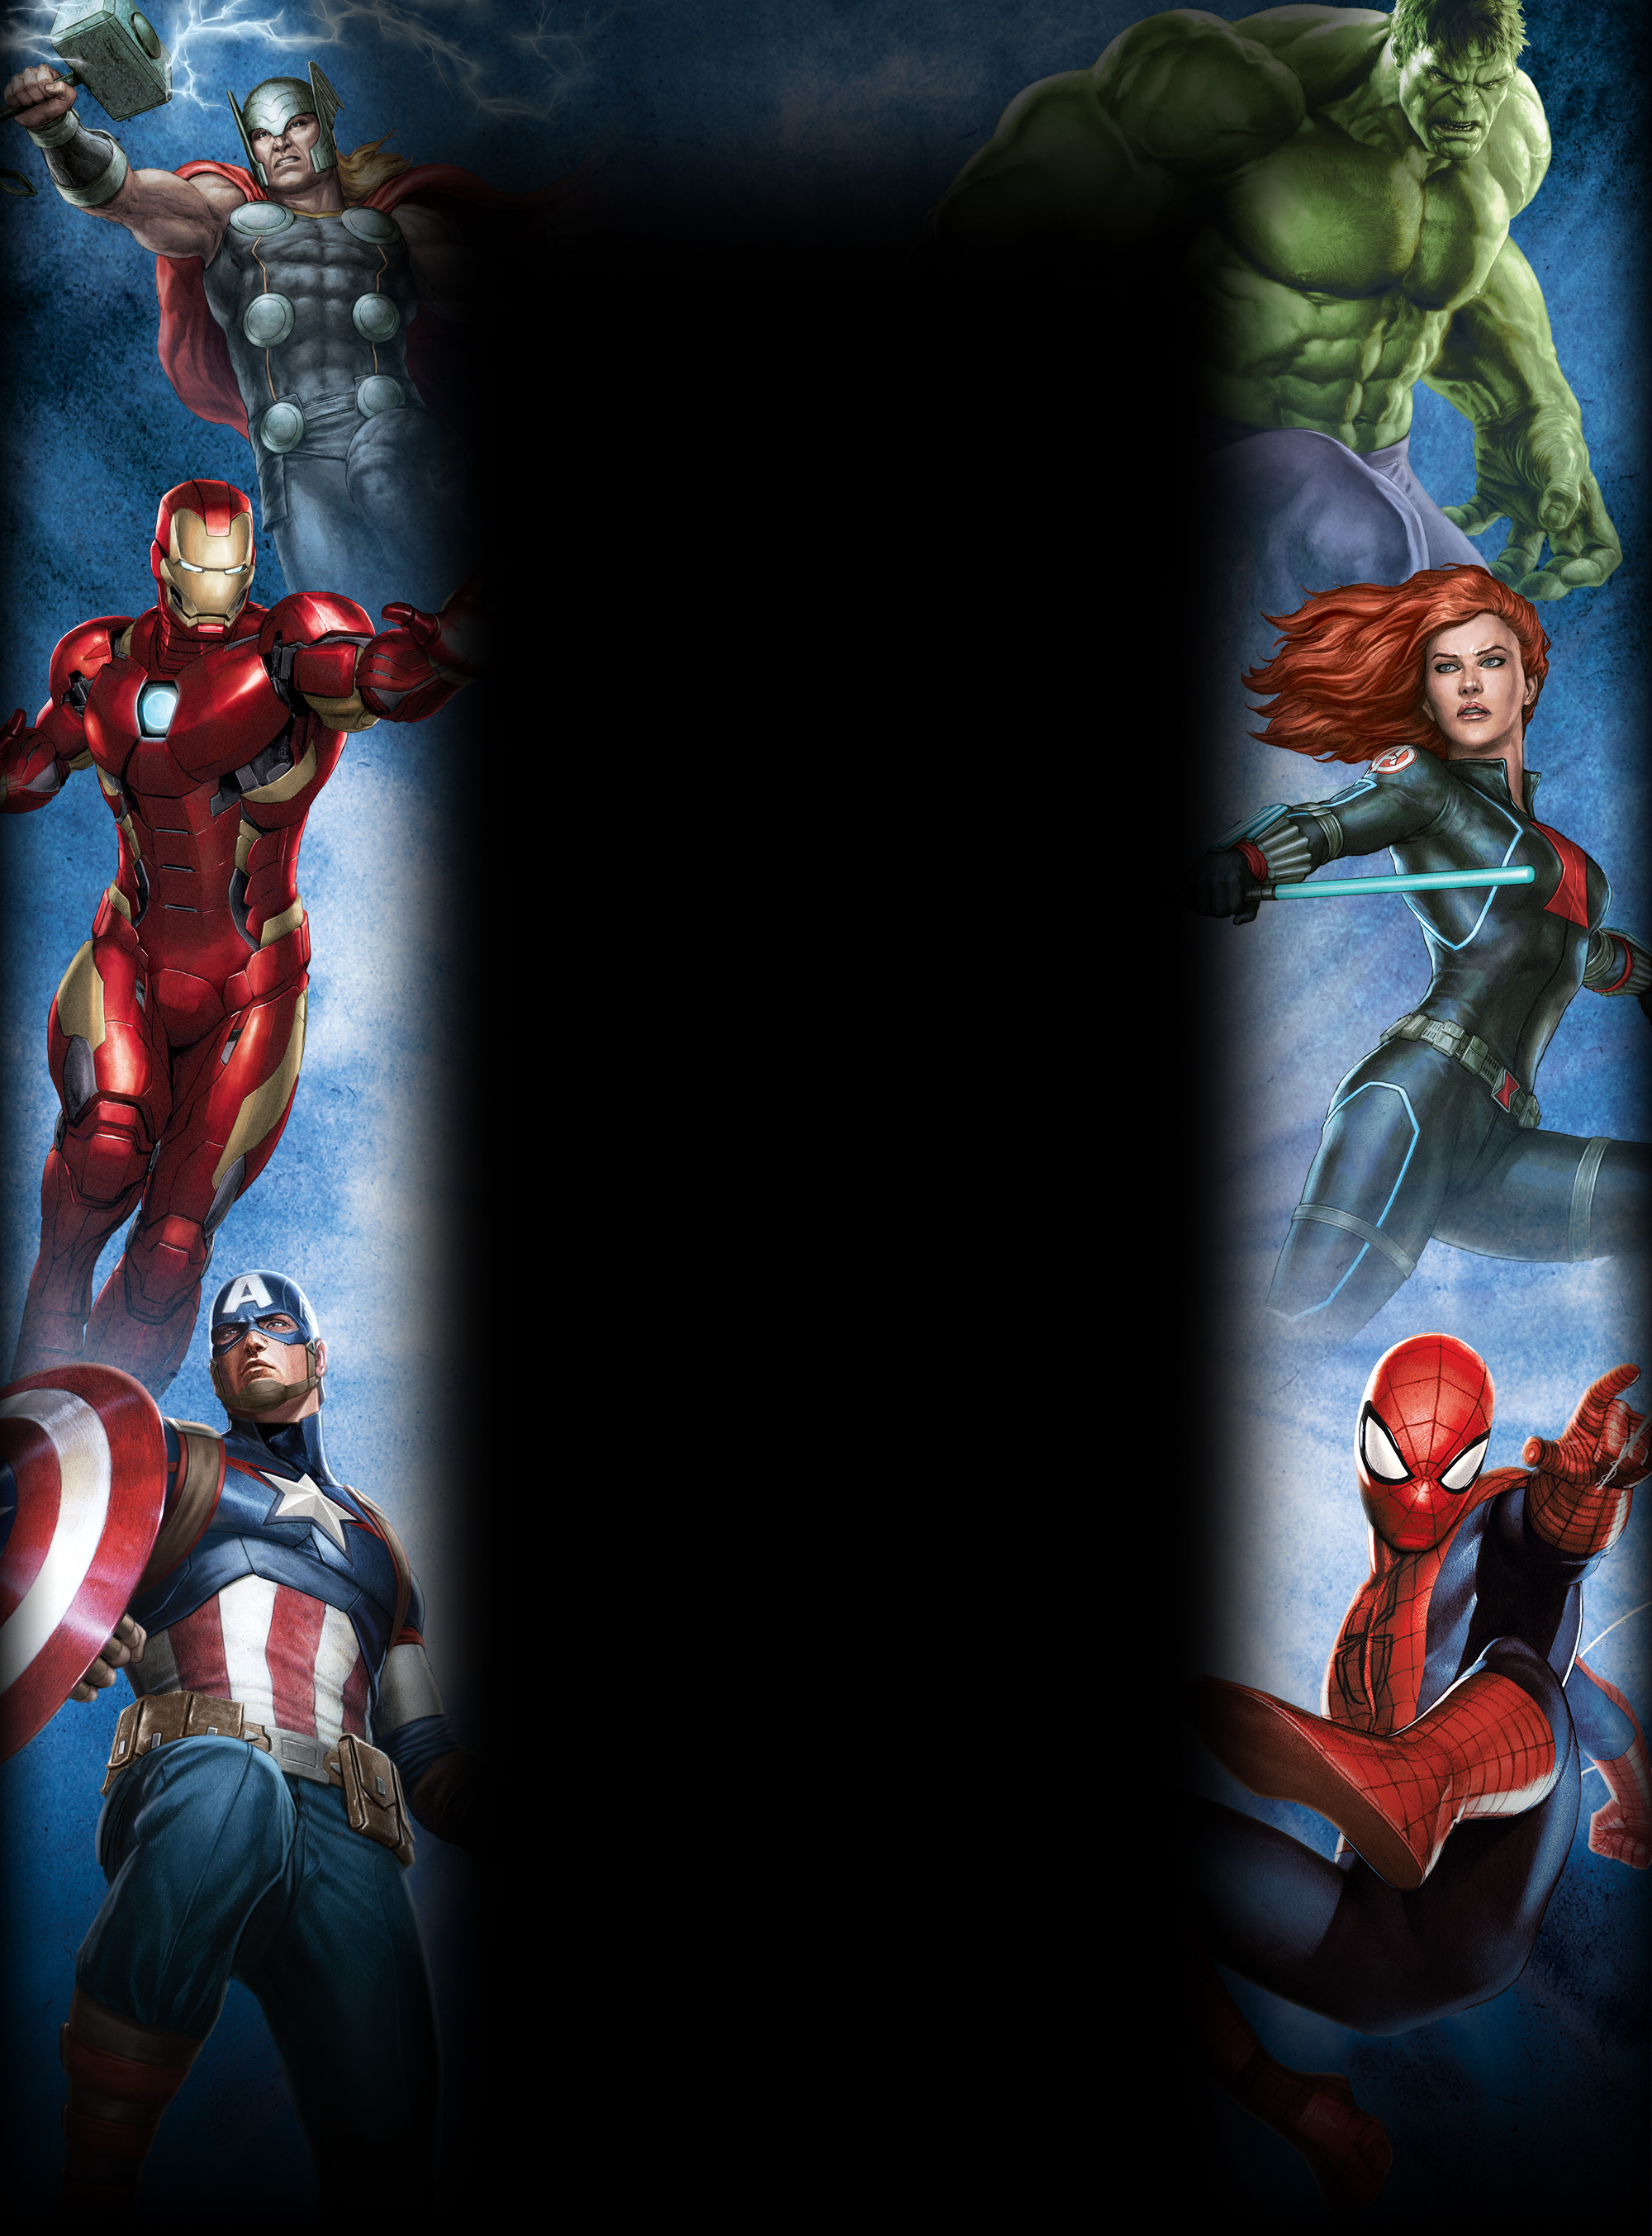 marvel-background-design-c.jpg